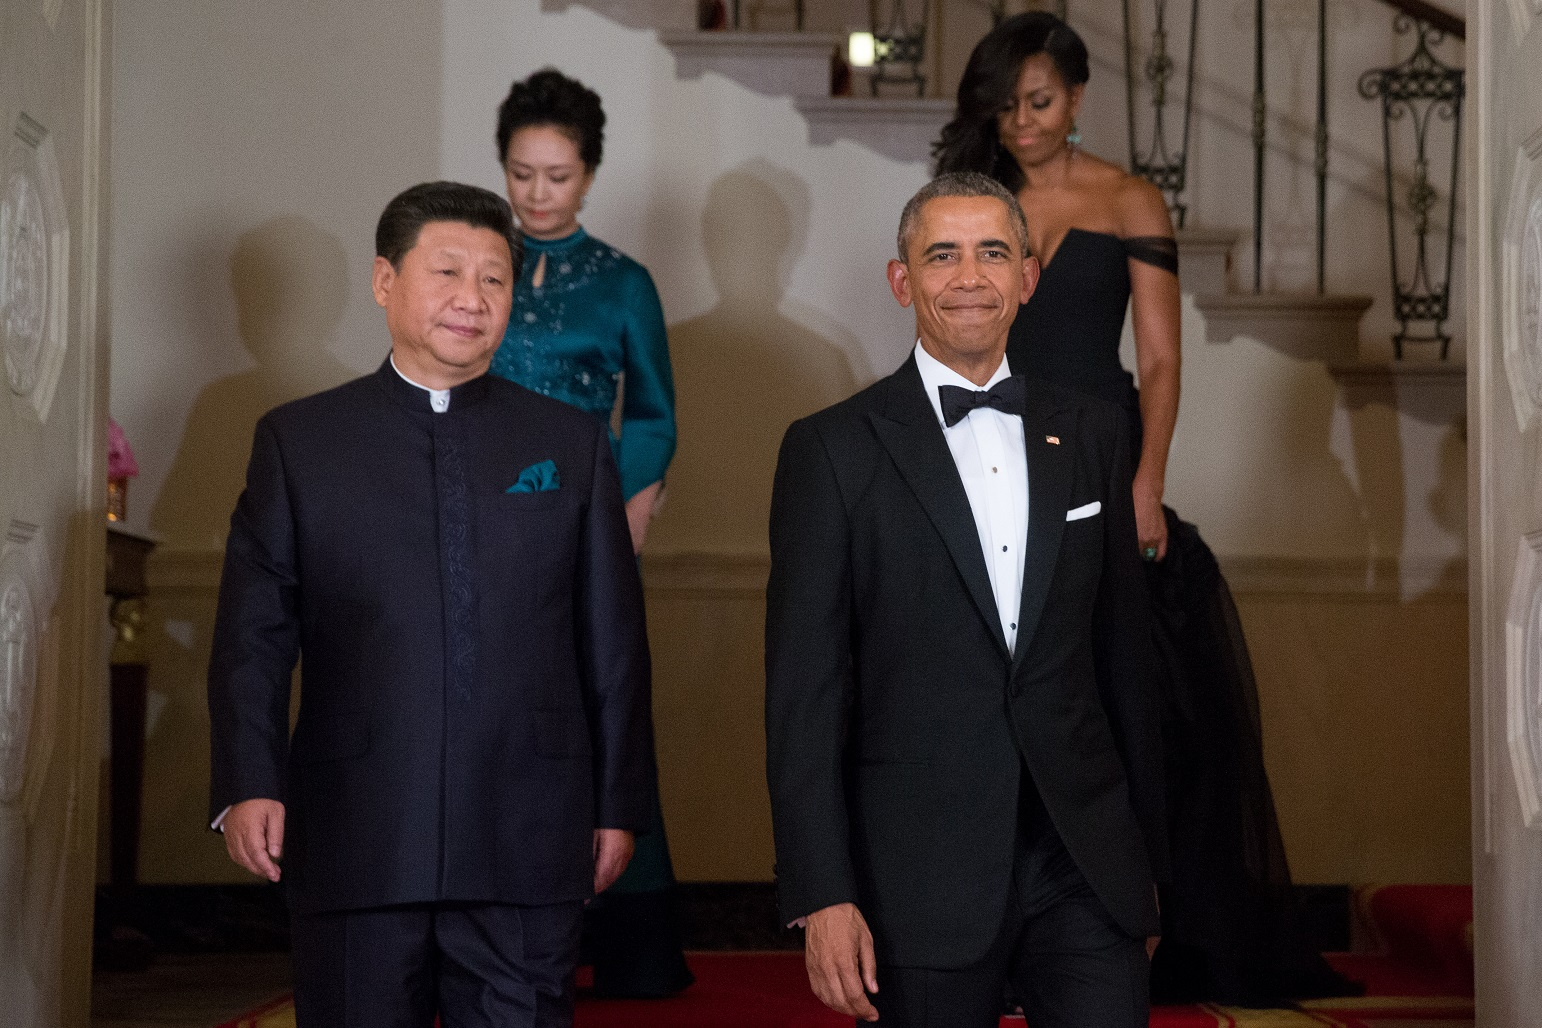 President barack obama chinese president xi jinping first lady michelle obama and jinping s wife